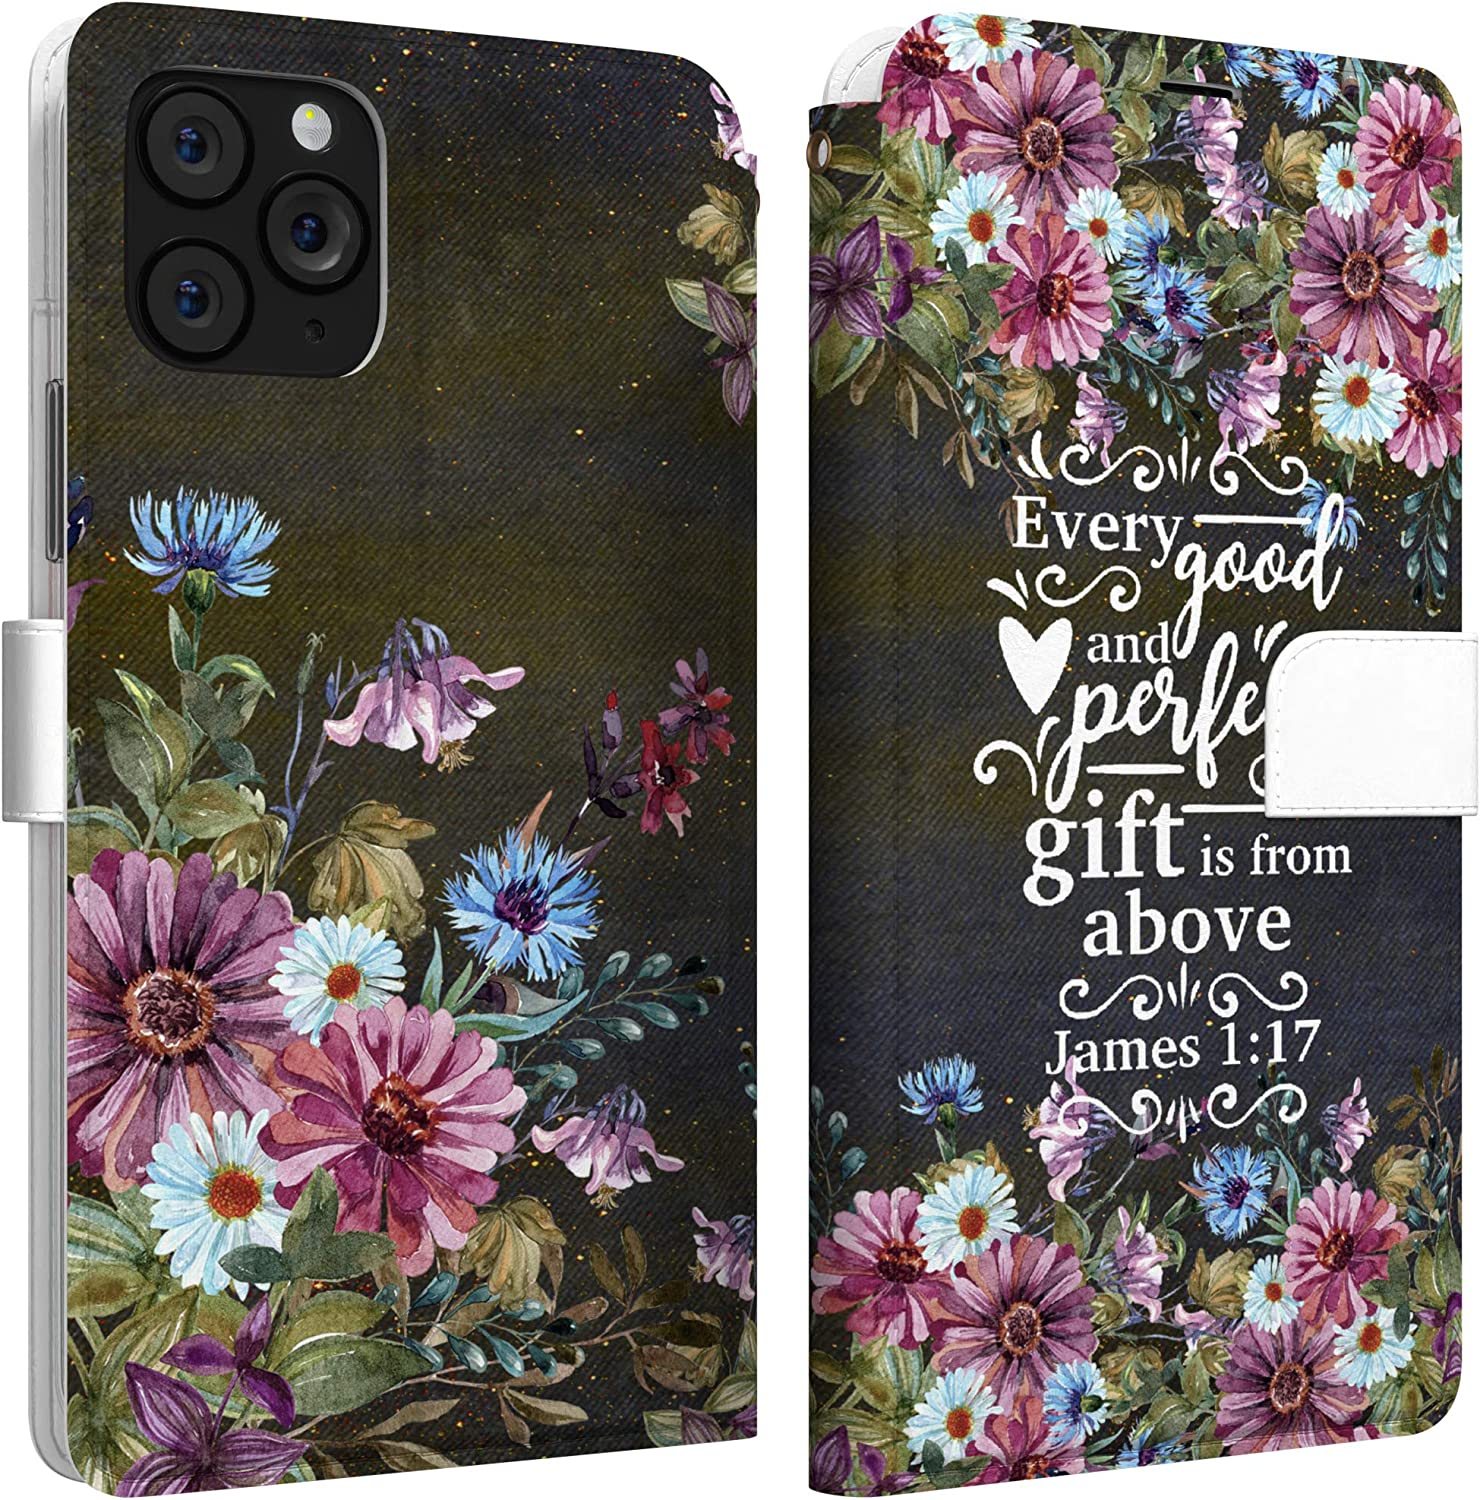 Mertak Wallet Case Compatible with iPhone 12 11 Pro Max SE Xr Xs X 8 Plus 7 6s James 1:17 Slim Fit Flowers Quote Cover Religious Magnetic Lightweight Black Daisy Card Holder Protective Bible Verse